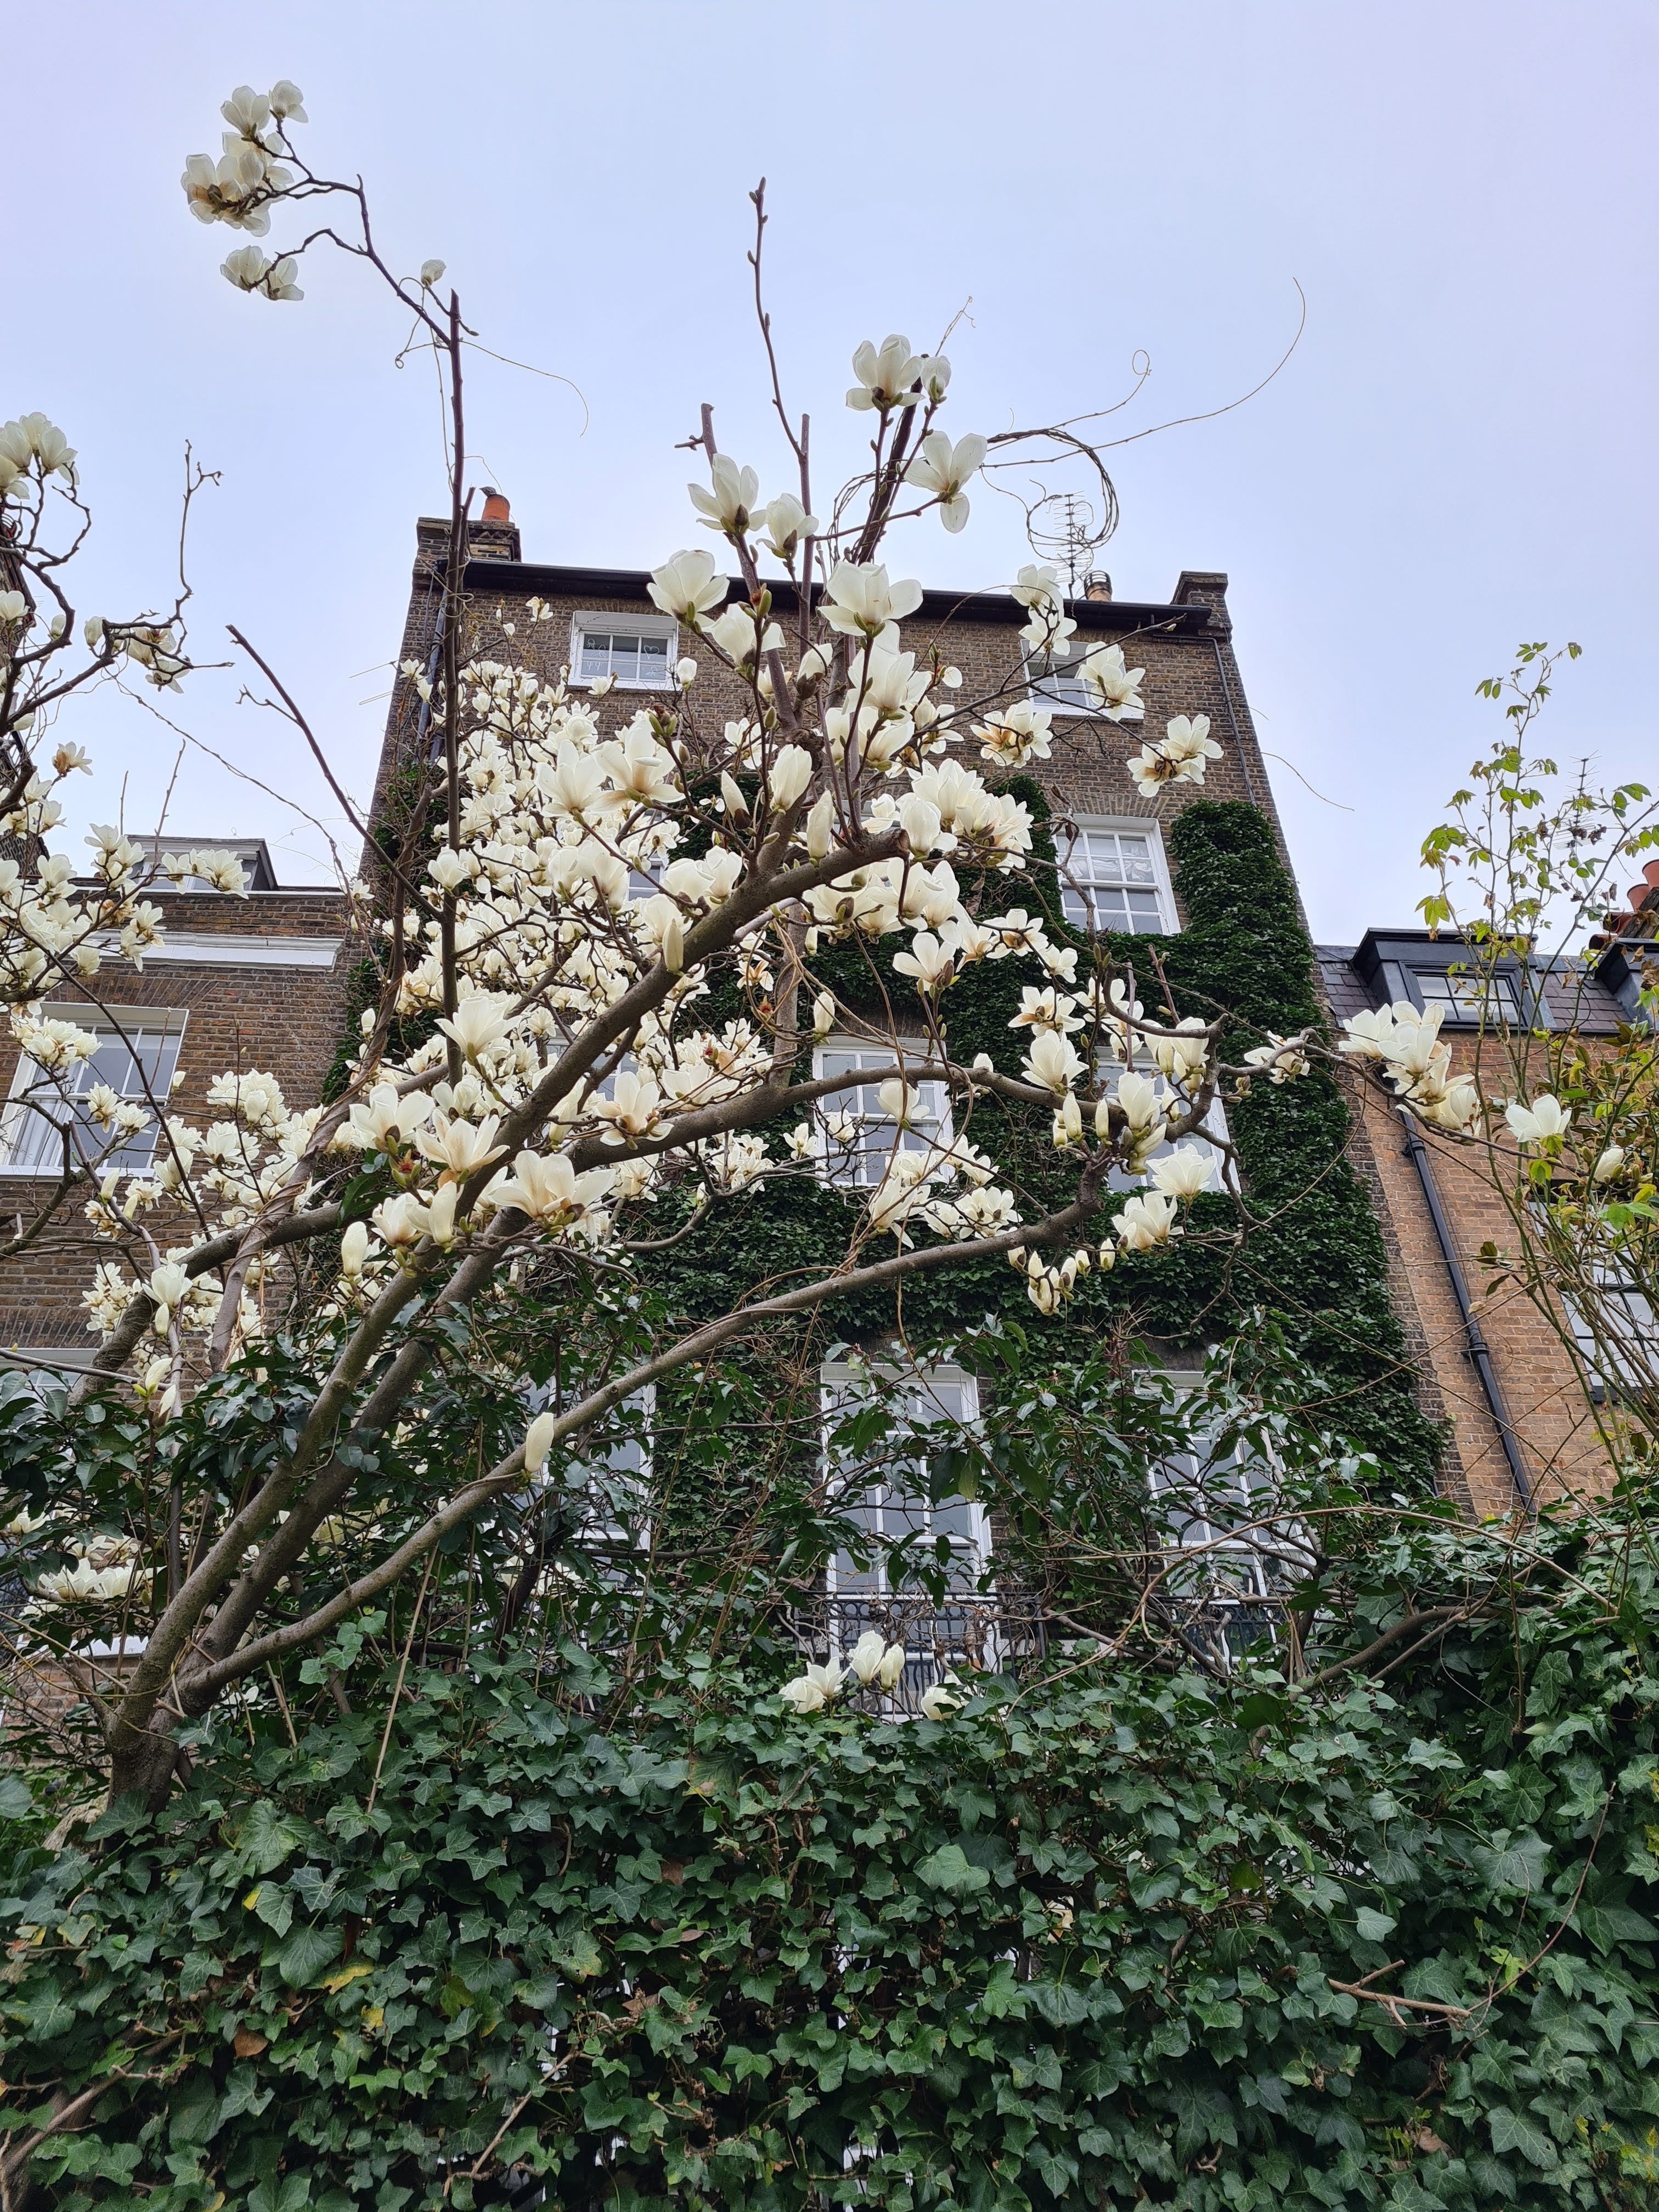 Instagrammable London blossom